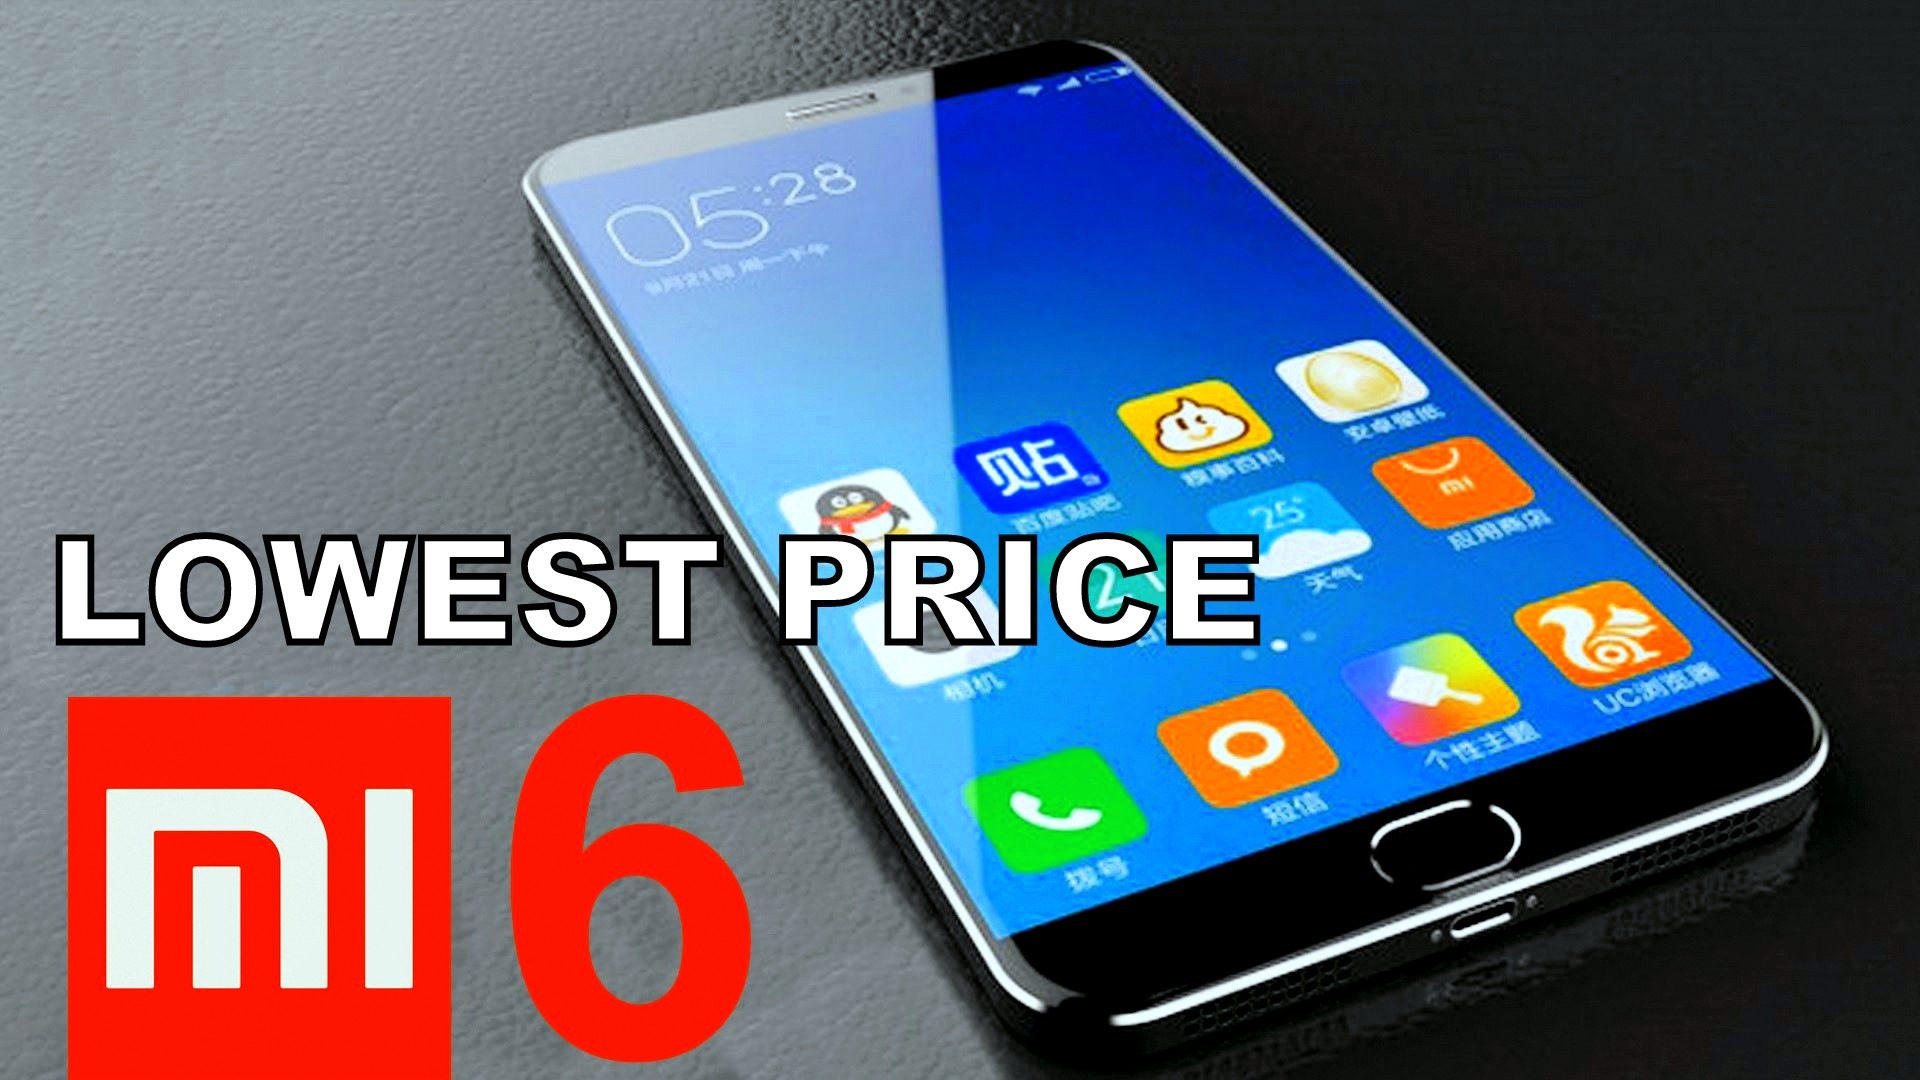 xiaomi mi6 lowest price xiamomi mi5 lowest price xiaomi deal